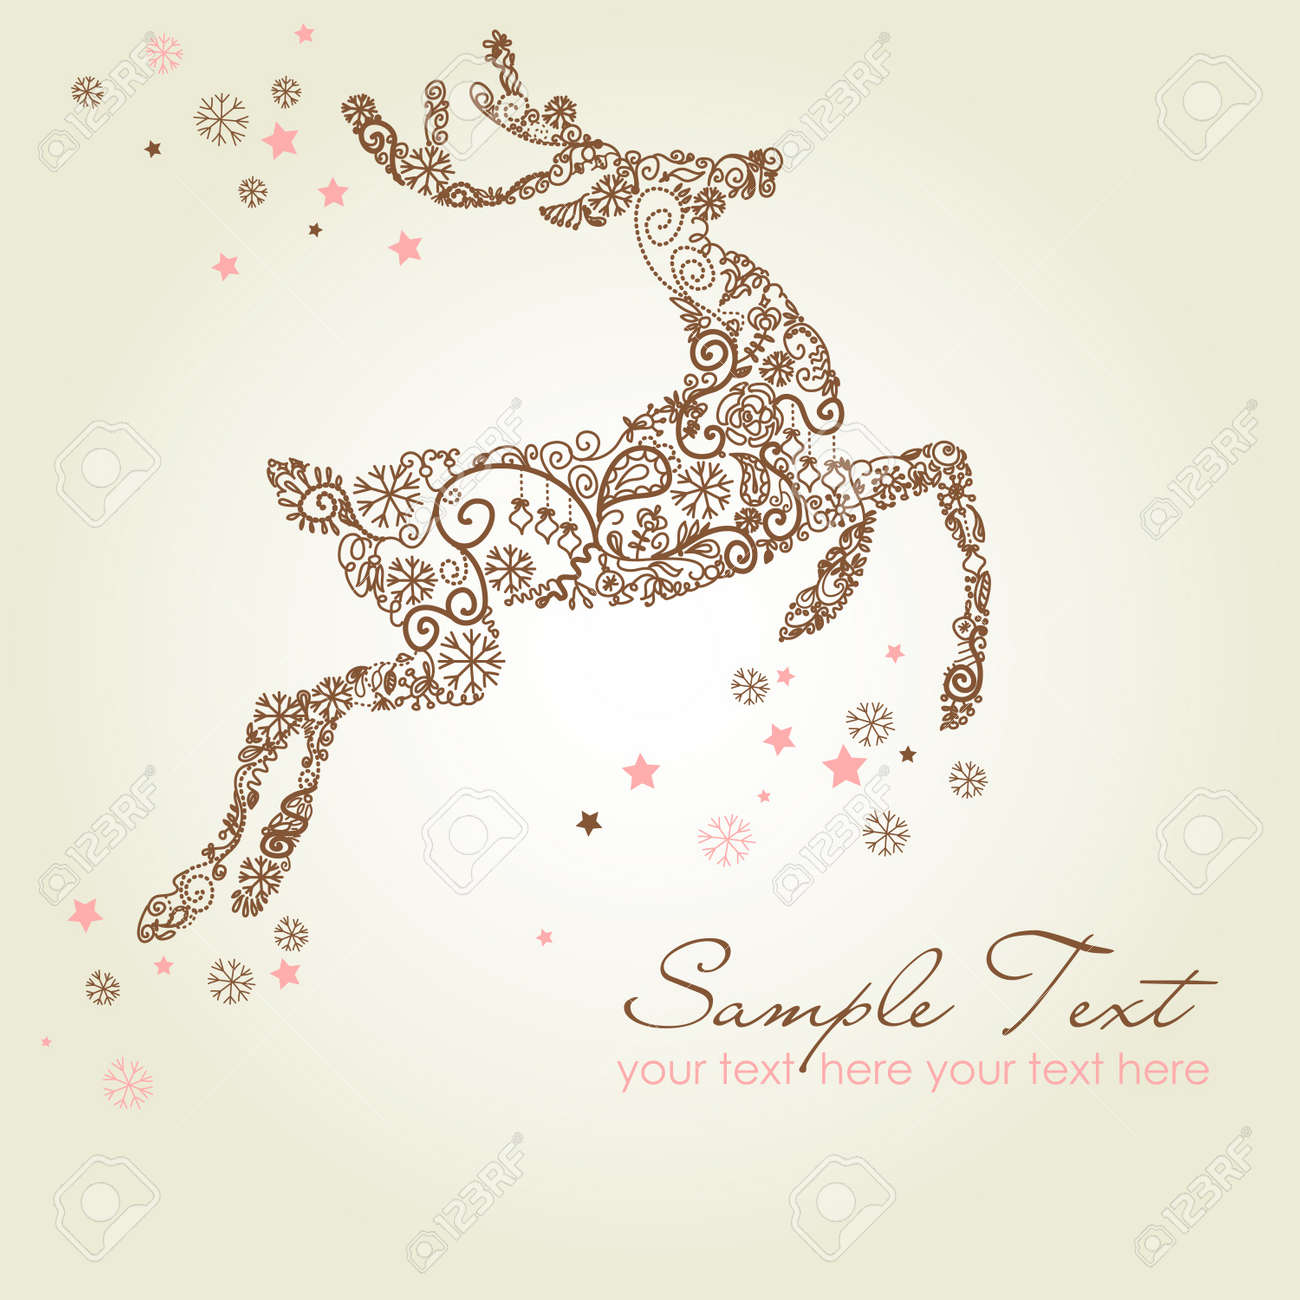 Christmas Deer, Vintage Vector Illustration Royalty Free Cliparts ...